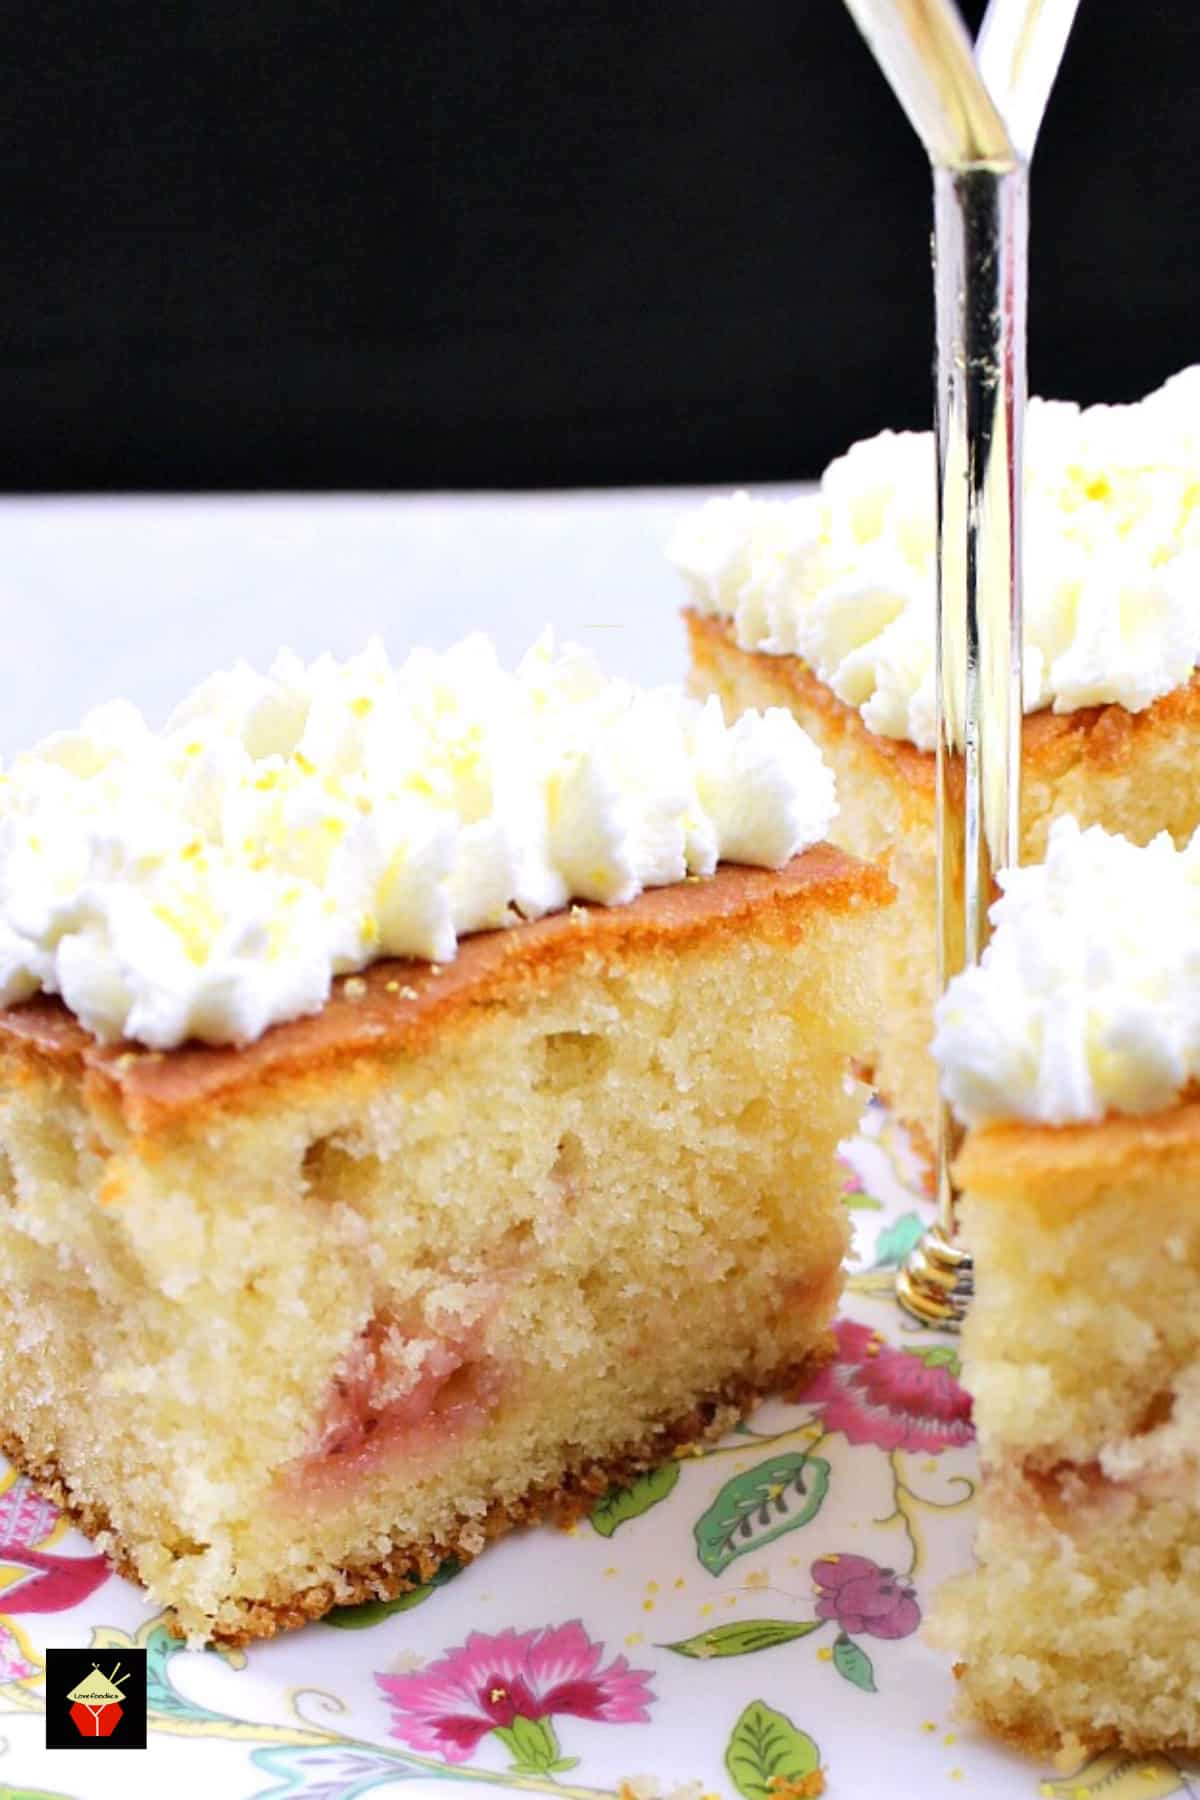 Lemon Drizzle Raspberry Ripple Cake. Easy recipe, soft, moist and great tasting cake, bursting with lemon and raspberry. A perfect sweet treat for afternoon tea or dessert.